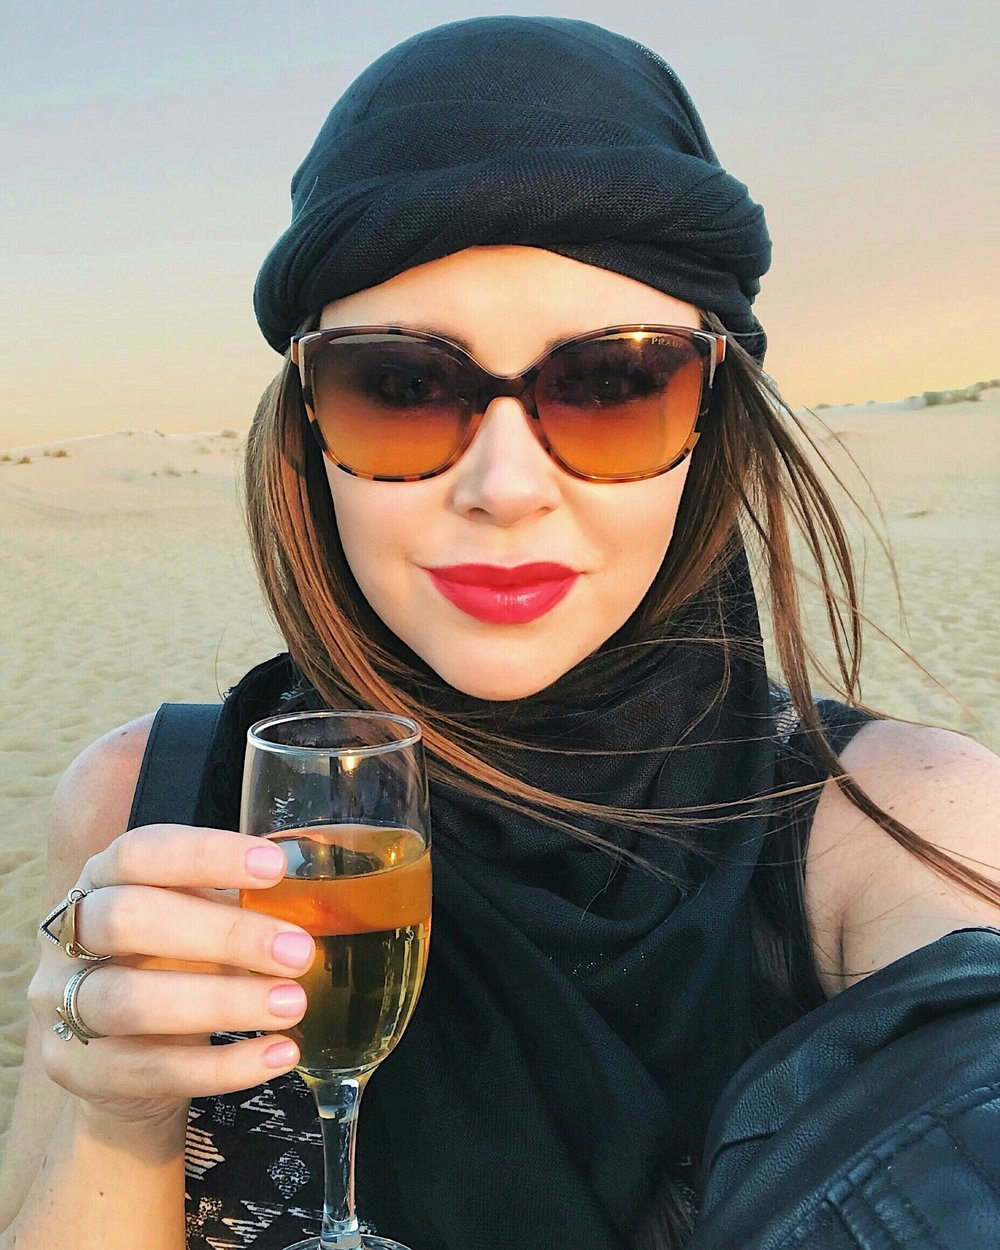 Drinking sparkling juice at the Platinum Heritage desert safari